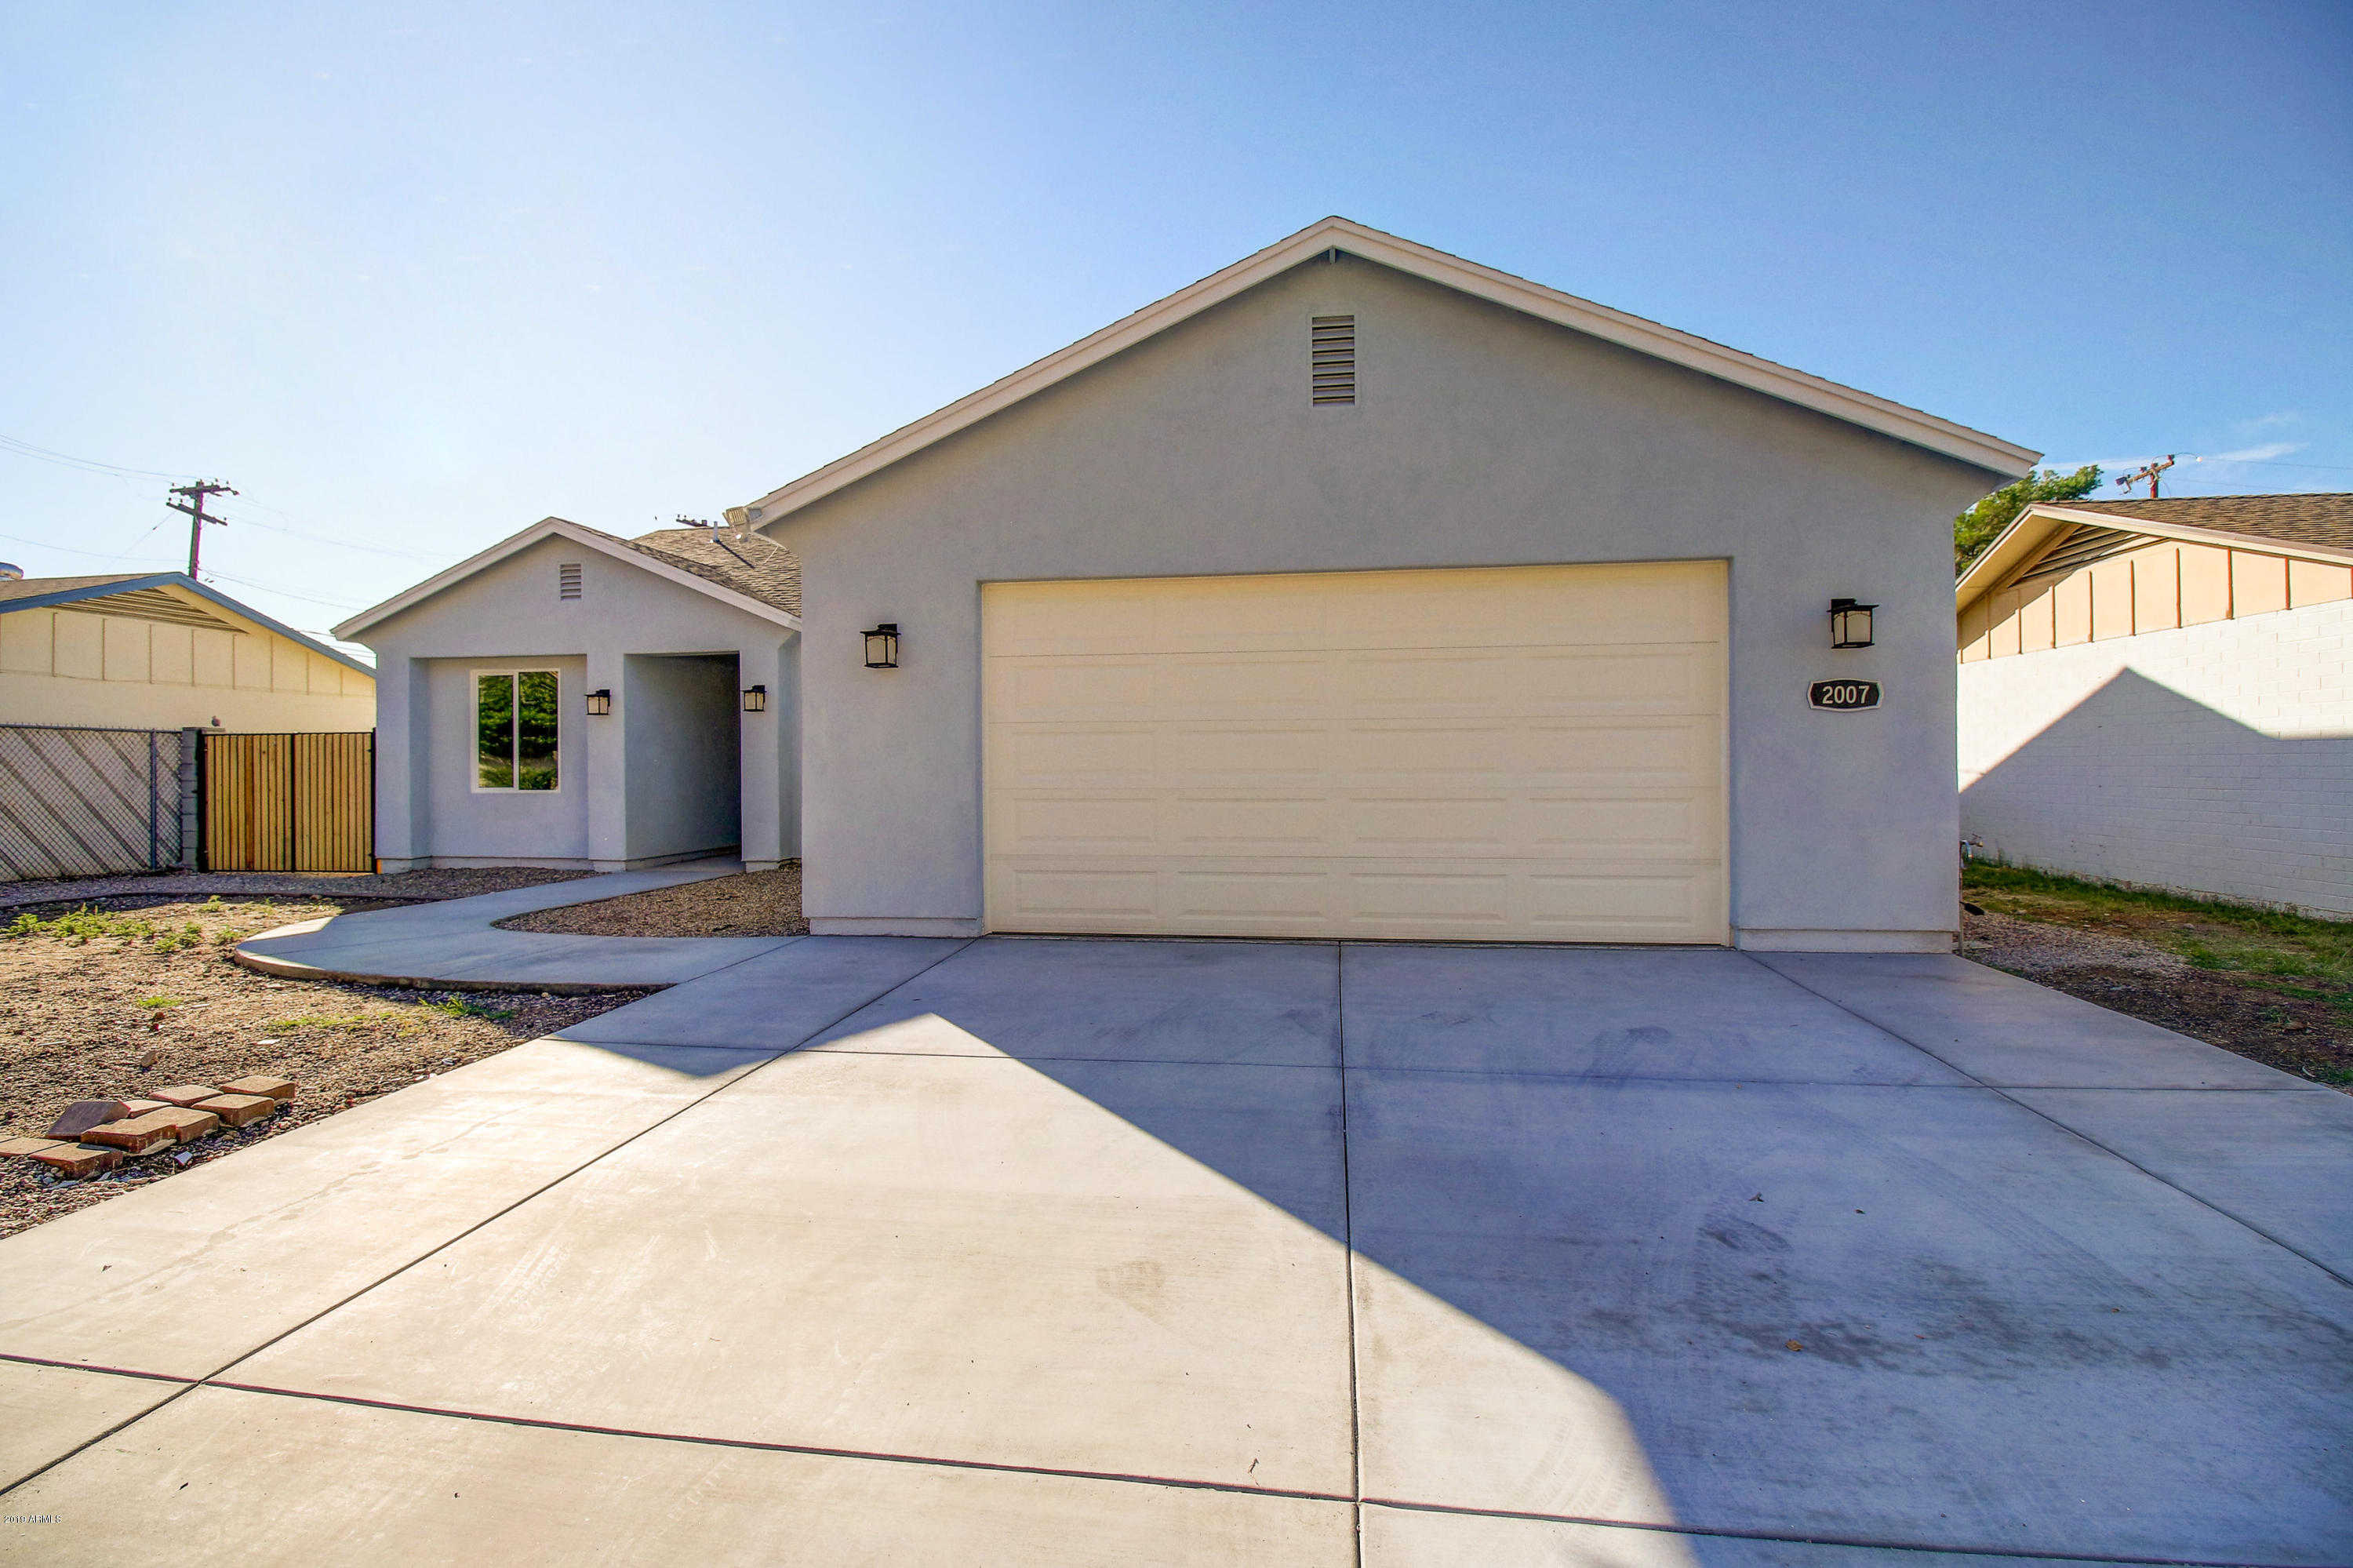 $300,000 - 3Br/2Ba - Home for Sale in Preston Heights, Phoenix